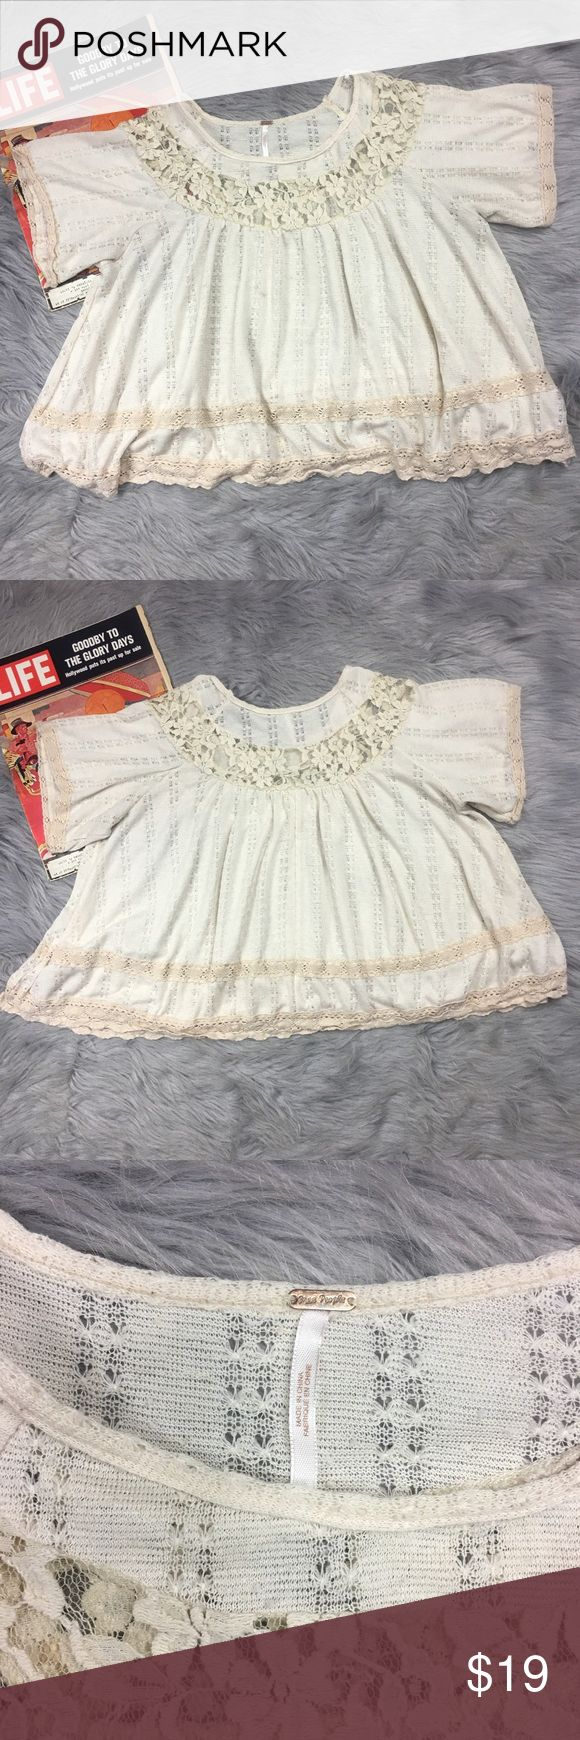 "Free People Semi Sheer Baby Doll Blouse Top Free People Sz M Loose Fit Beige Semi Sheer Lace Crochet Neckline Baby Doll Blouse Top  Nice Pre-Owned Condition, 1 small smudge like spot on front (see pic) not very obvious, No Holes   *Measurements are taken with garments laid flat and unstretched, please compare to your own garments for best fit*  Chest laid flat from pit to pit: 26"" across  Length from collar to hem: 22"" Free People Tops Blouses"